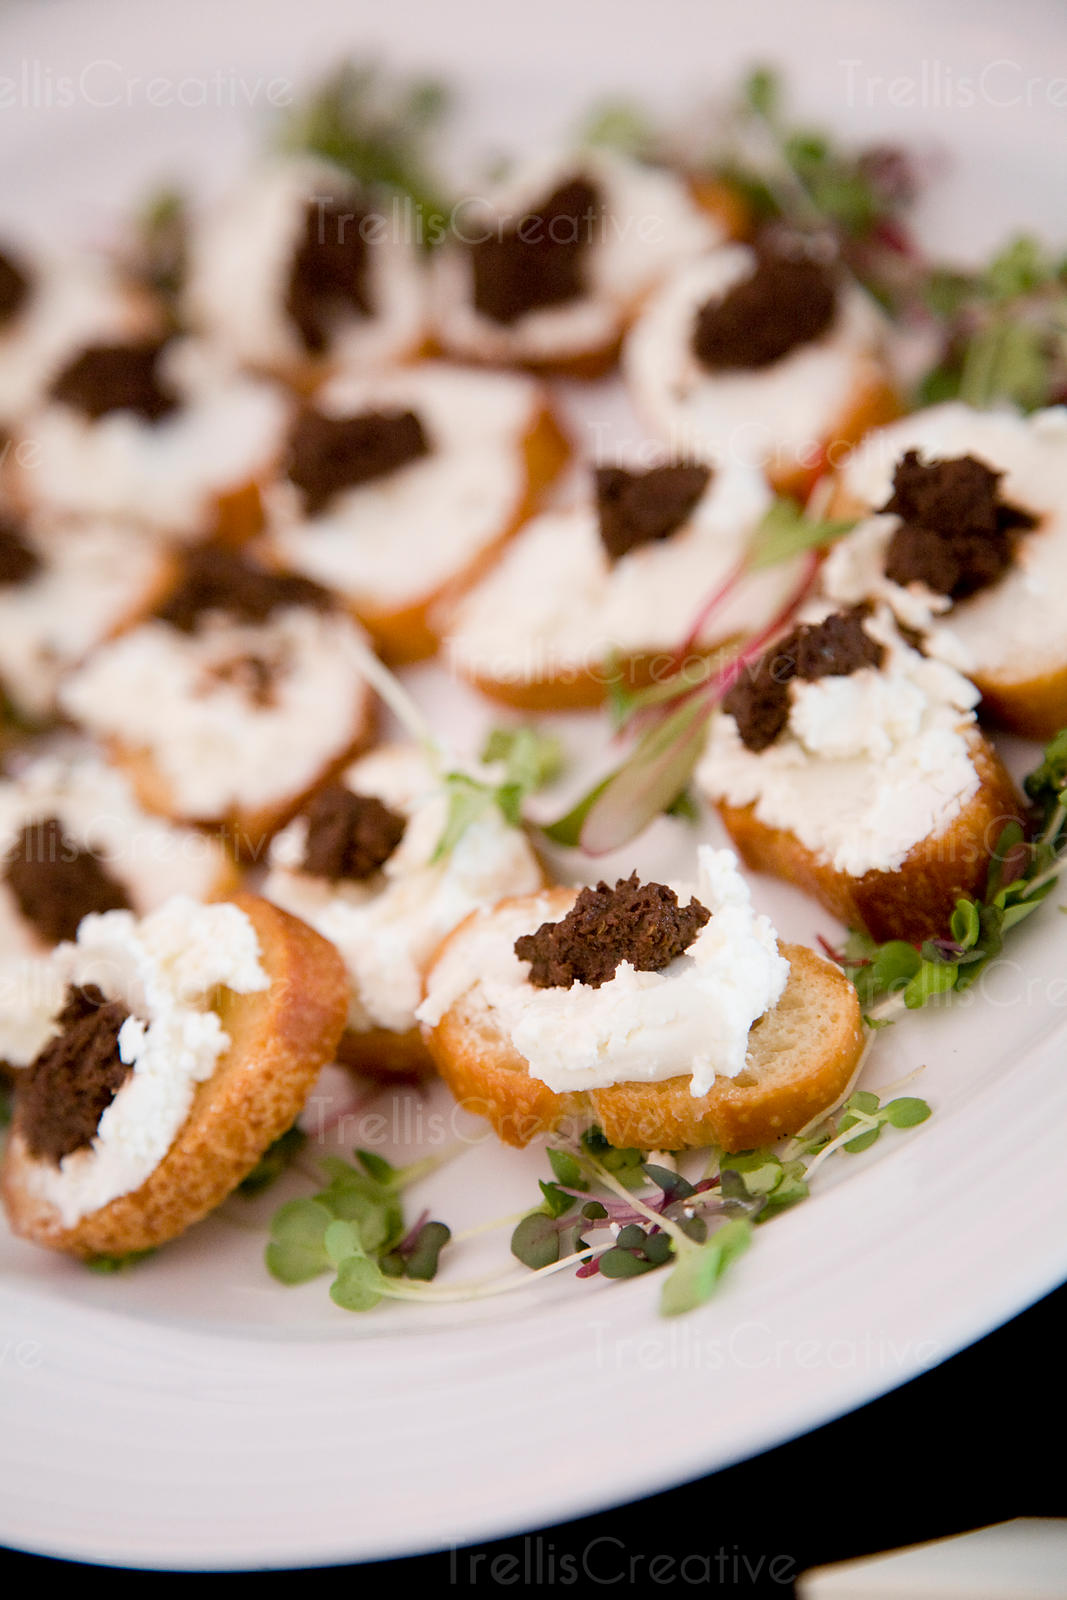 Crustini with goat cheese and fig tapenade